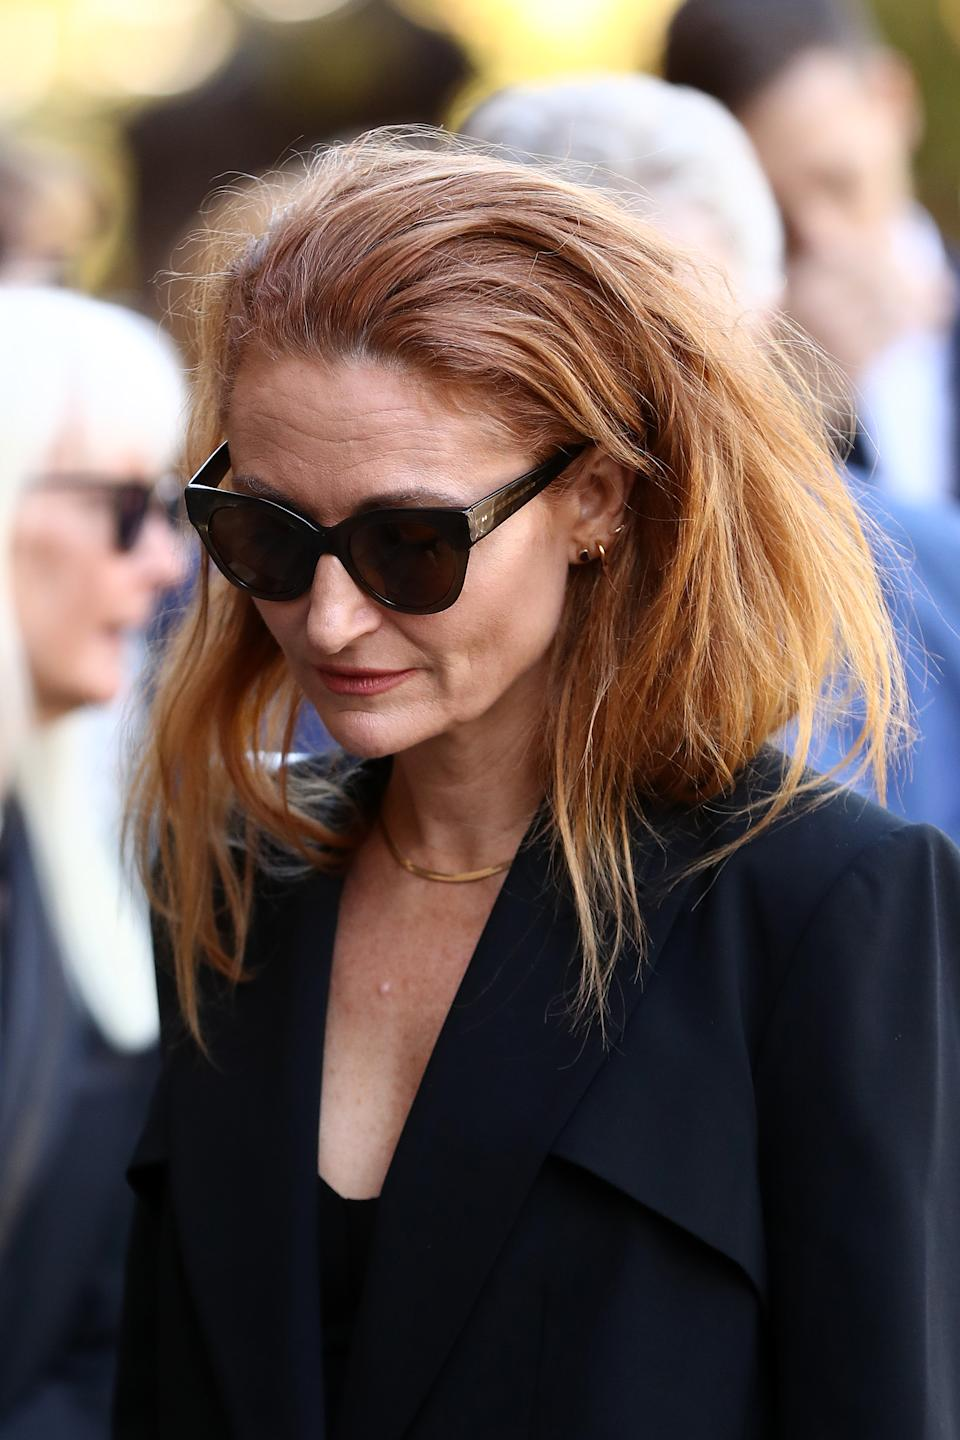 Alexandra Smart attends the State Funeral for Carla Zampatti at St Mary's Cathedral on April 15, 2021 in Sydney, Australia